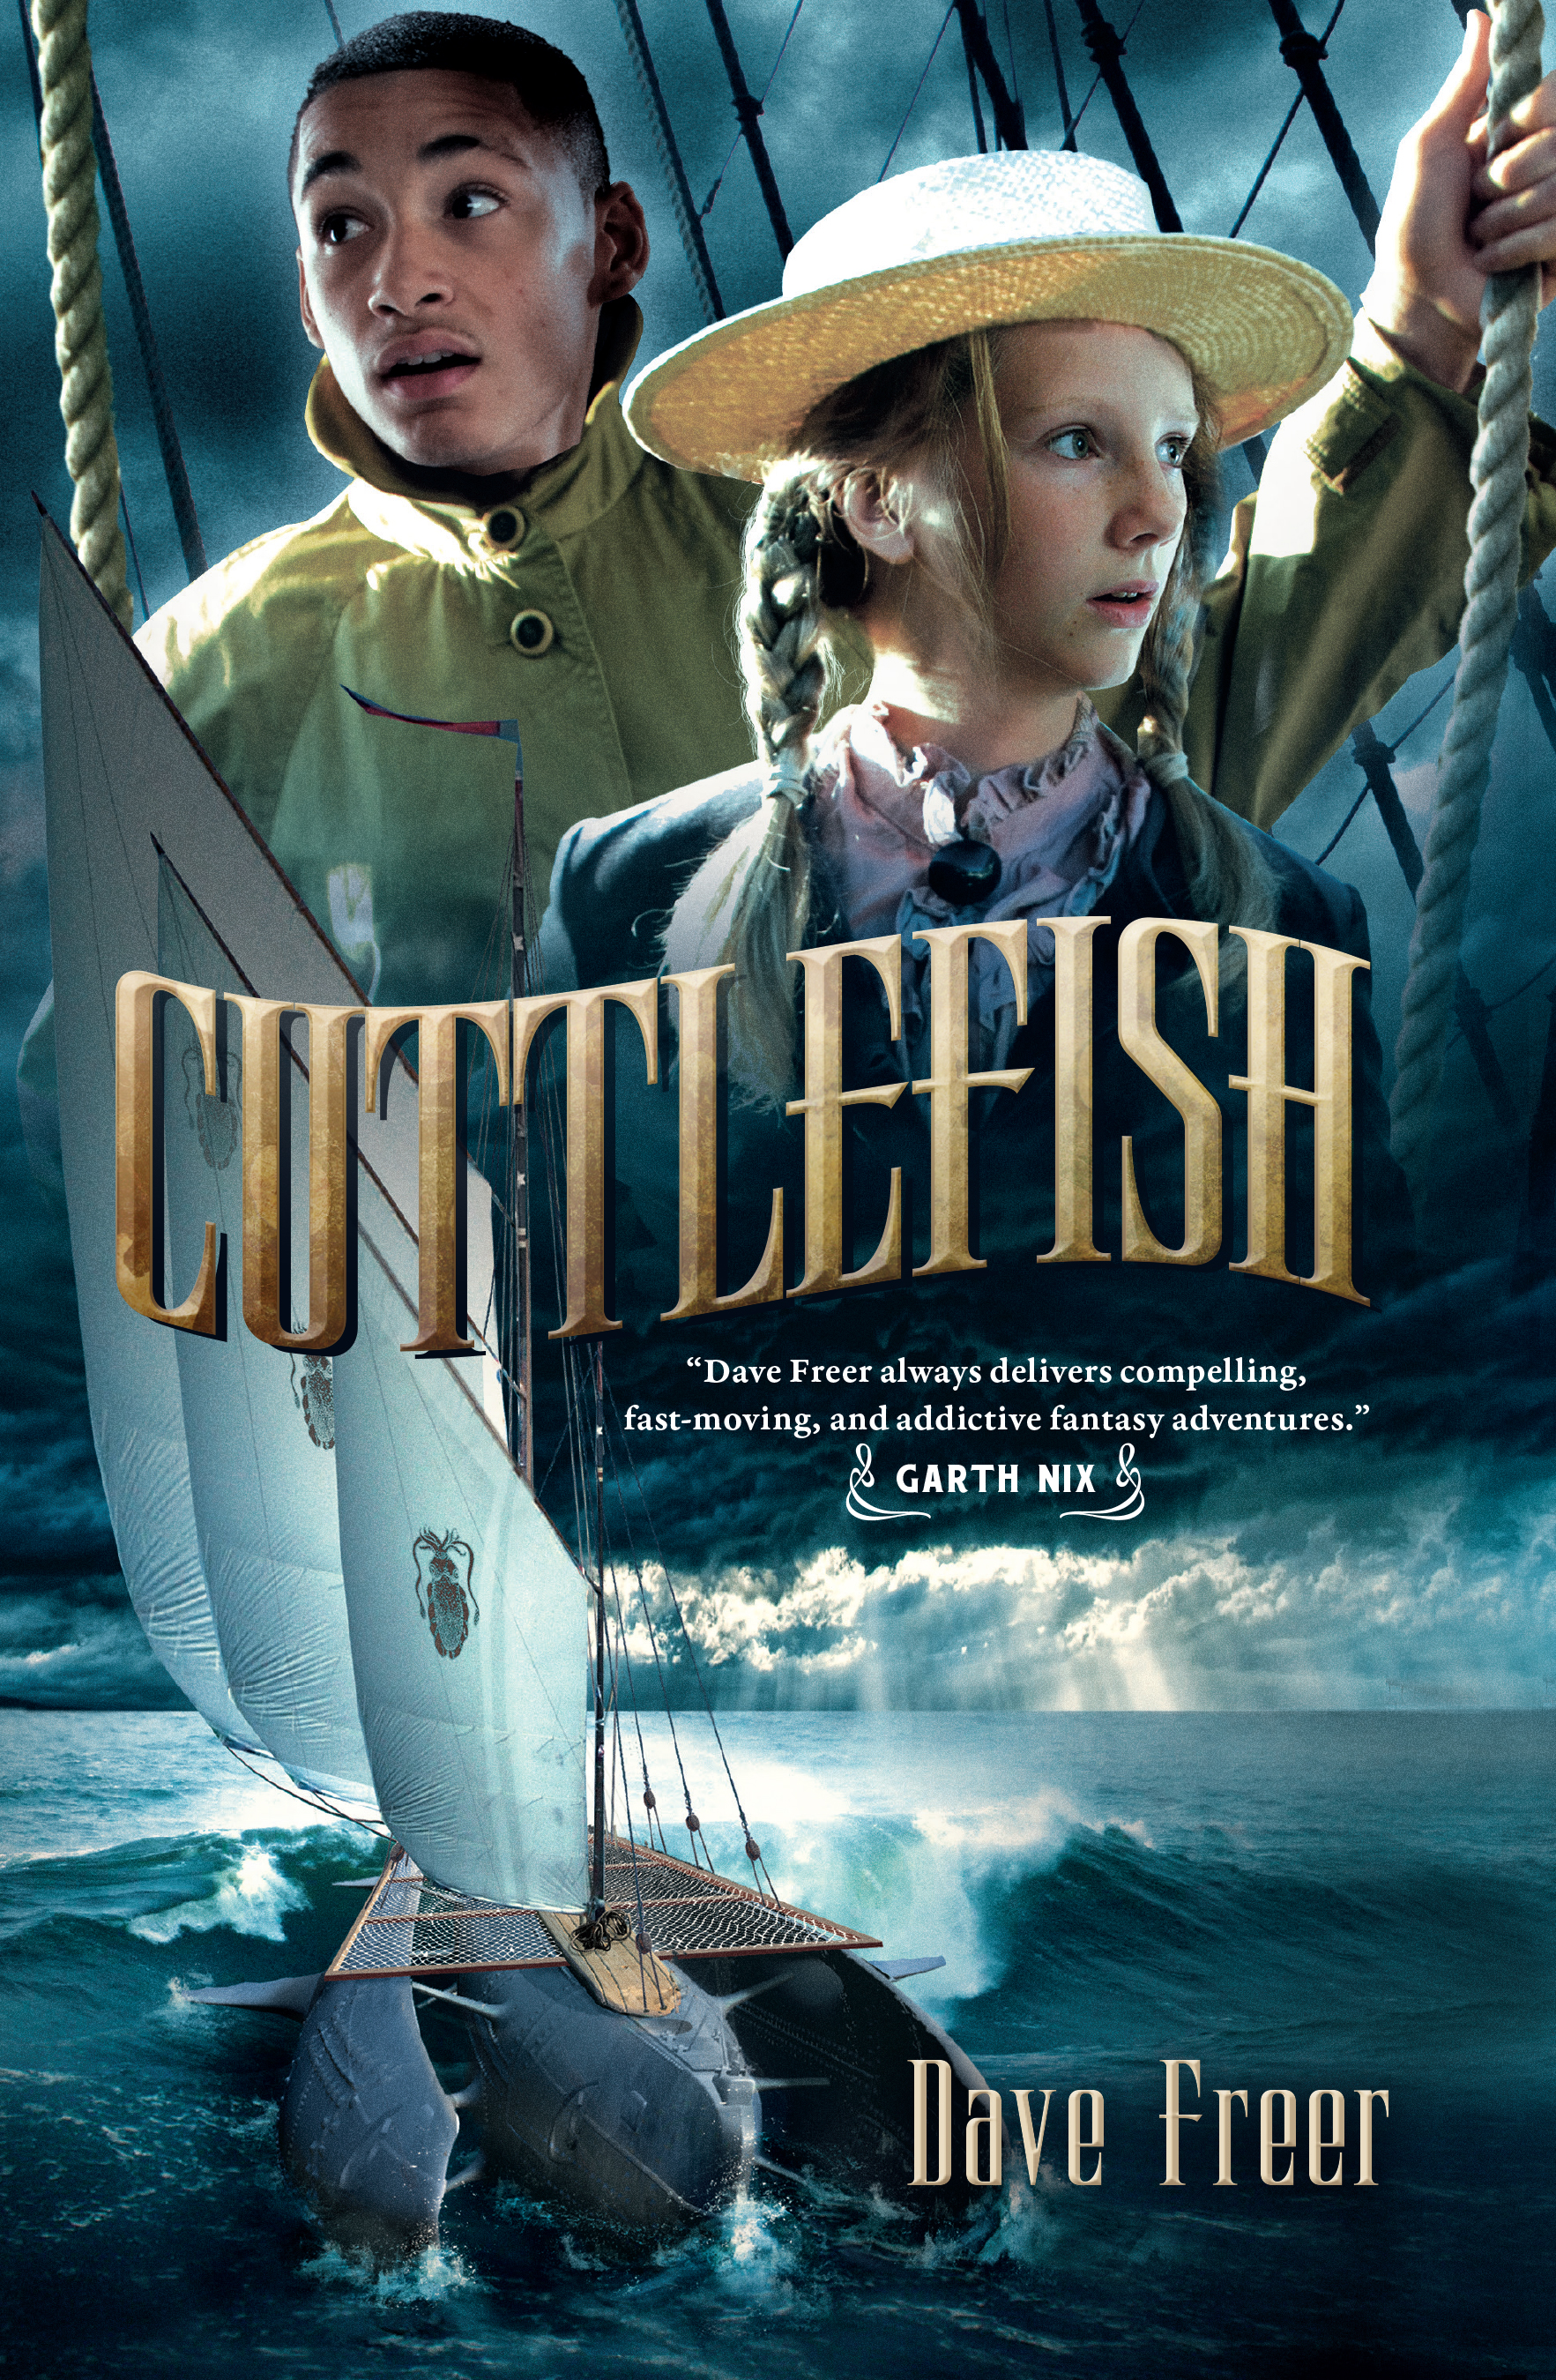 Cuttlefish cover image